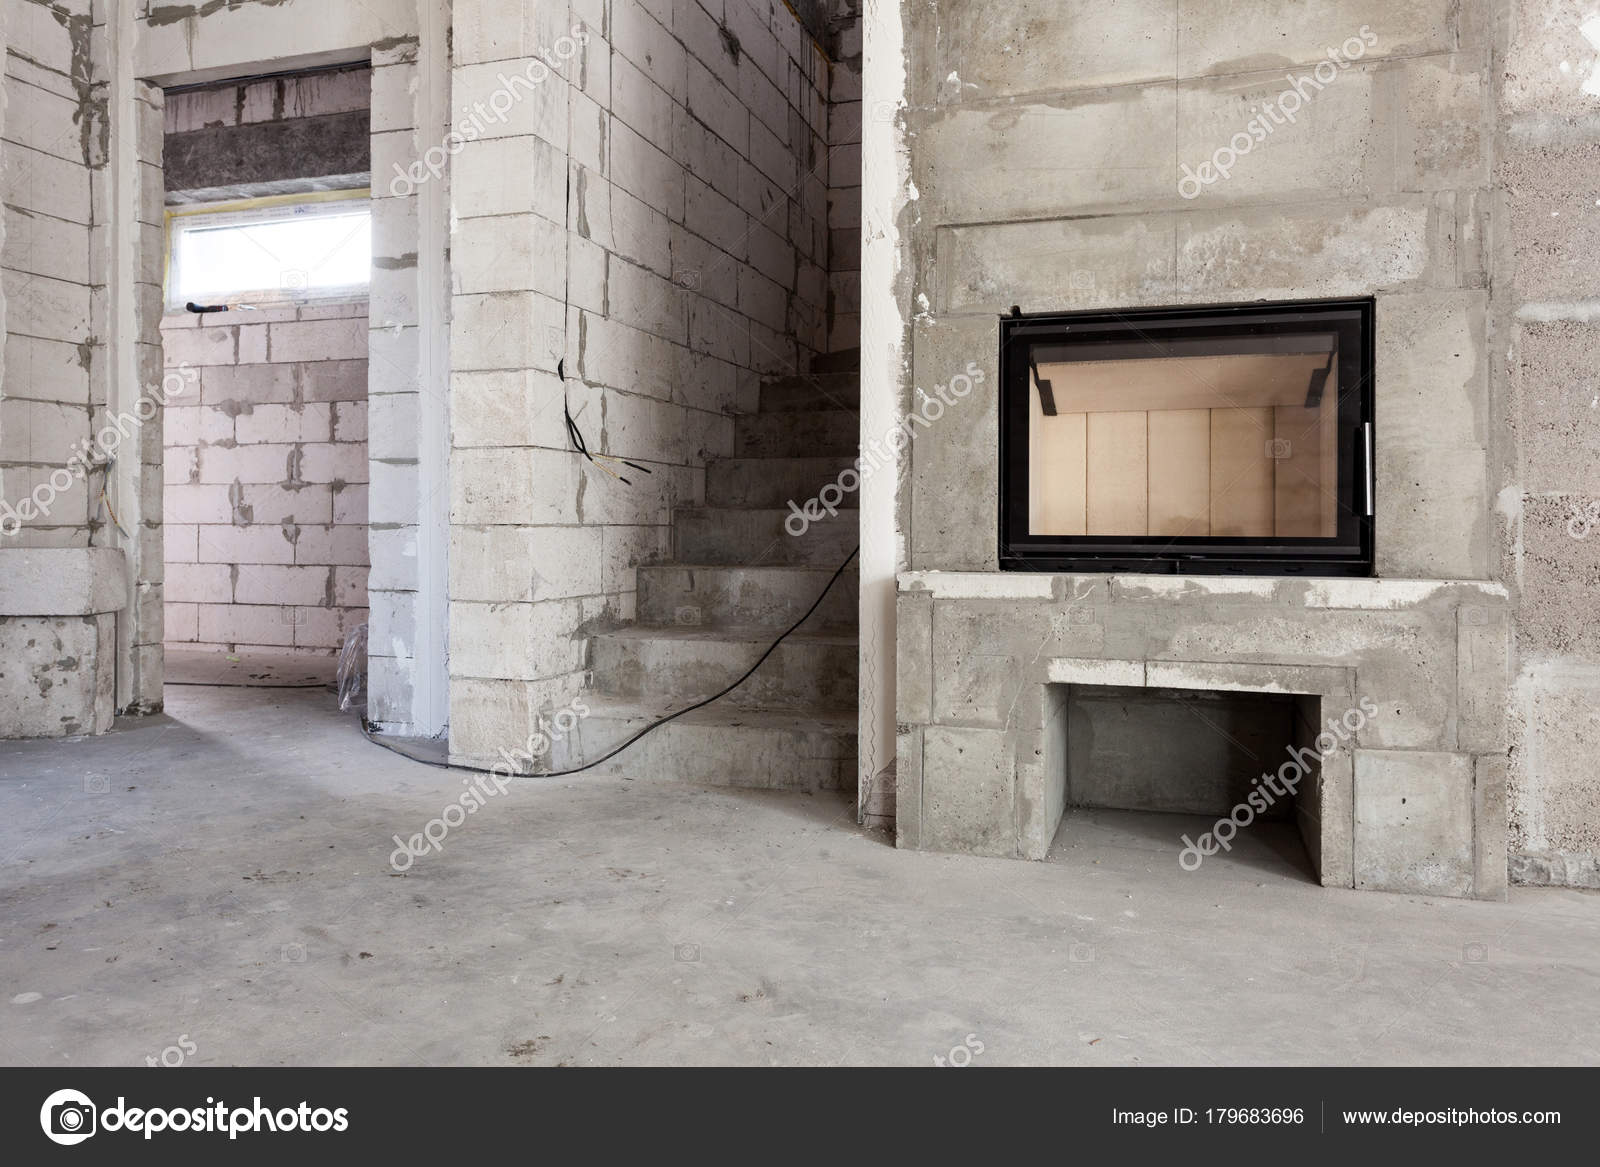 new house construction modern wood fired fireplace construction rh depositphotos com wiring a concrete block house House Wiring Circuits Diagram